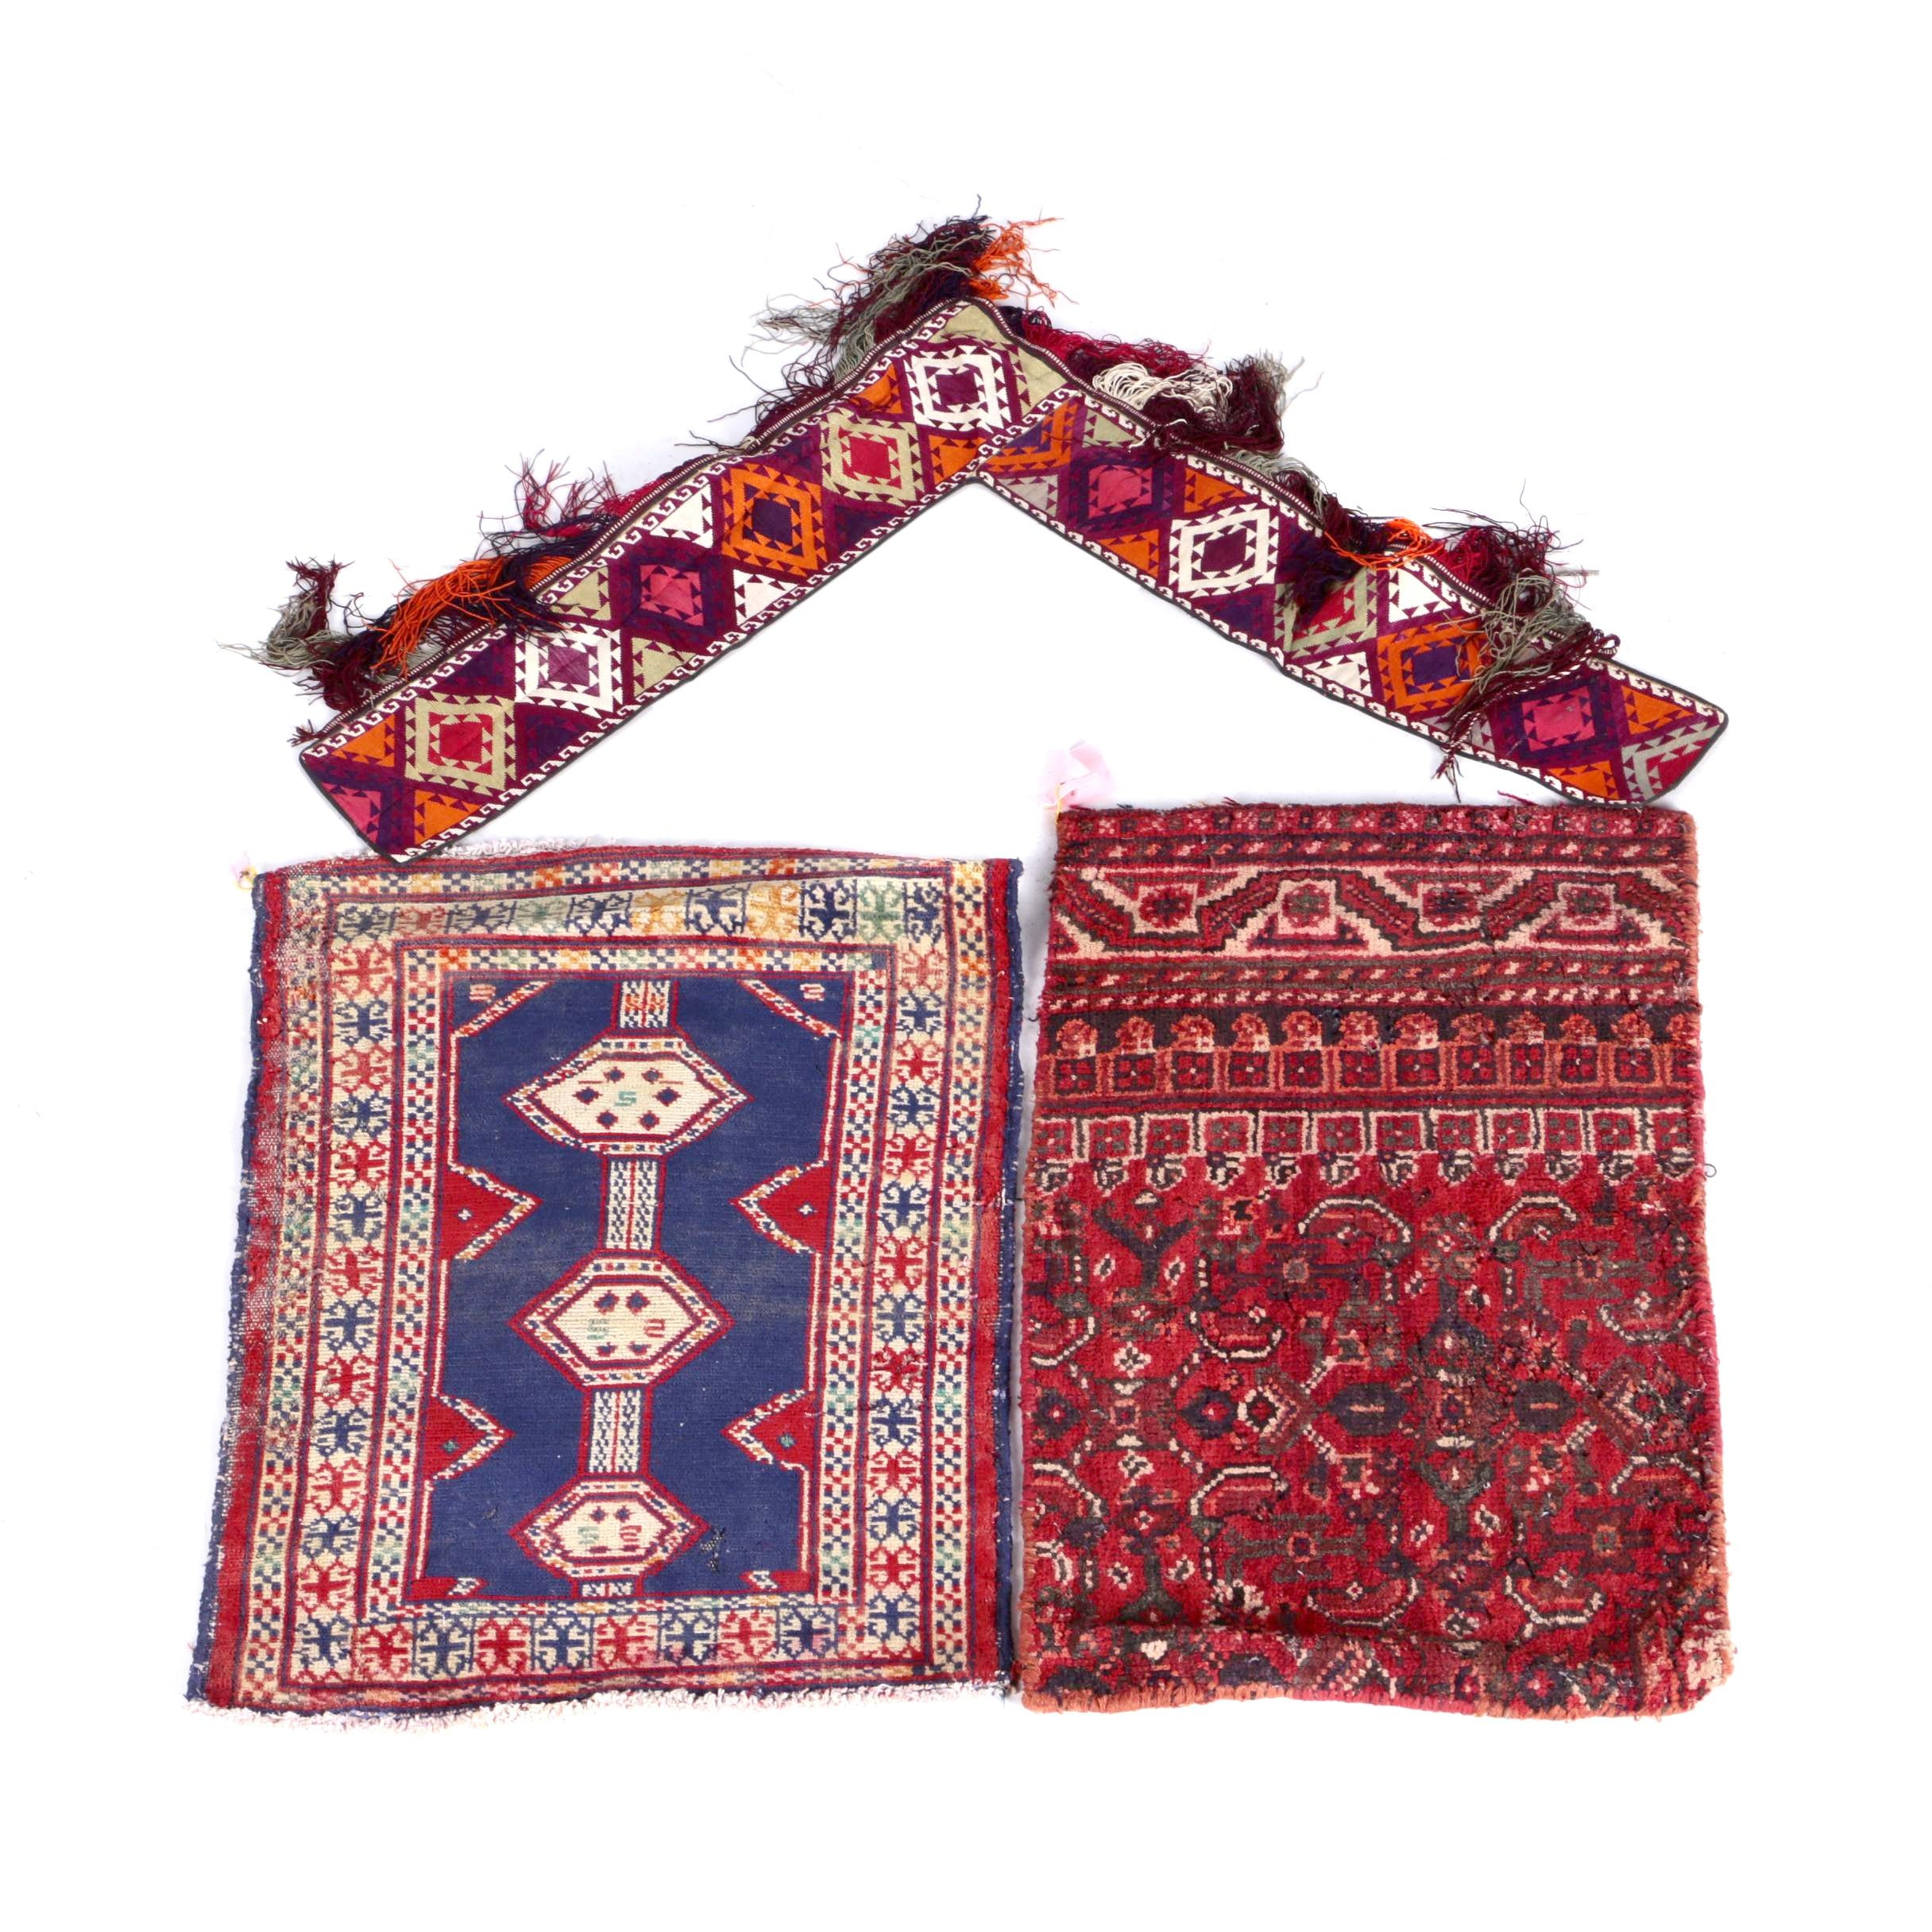 Turkmen and Persian Tribal Rug, Bagface, and Kapunuk